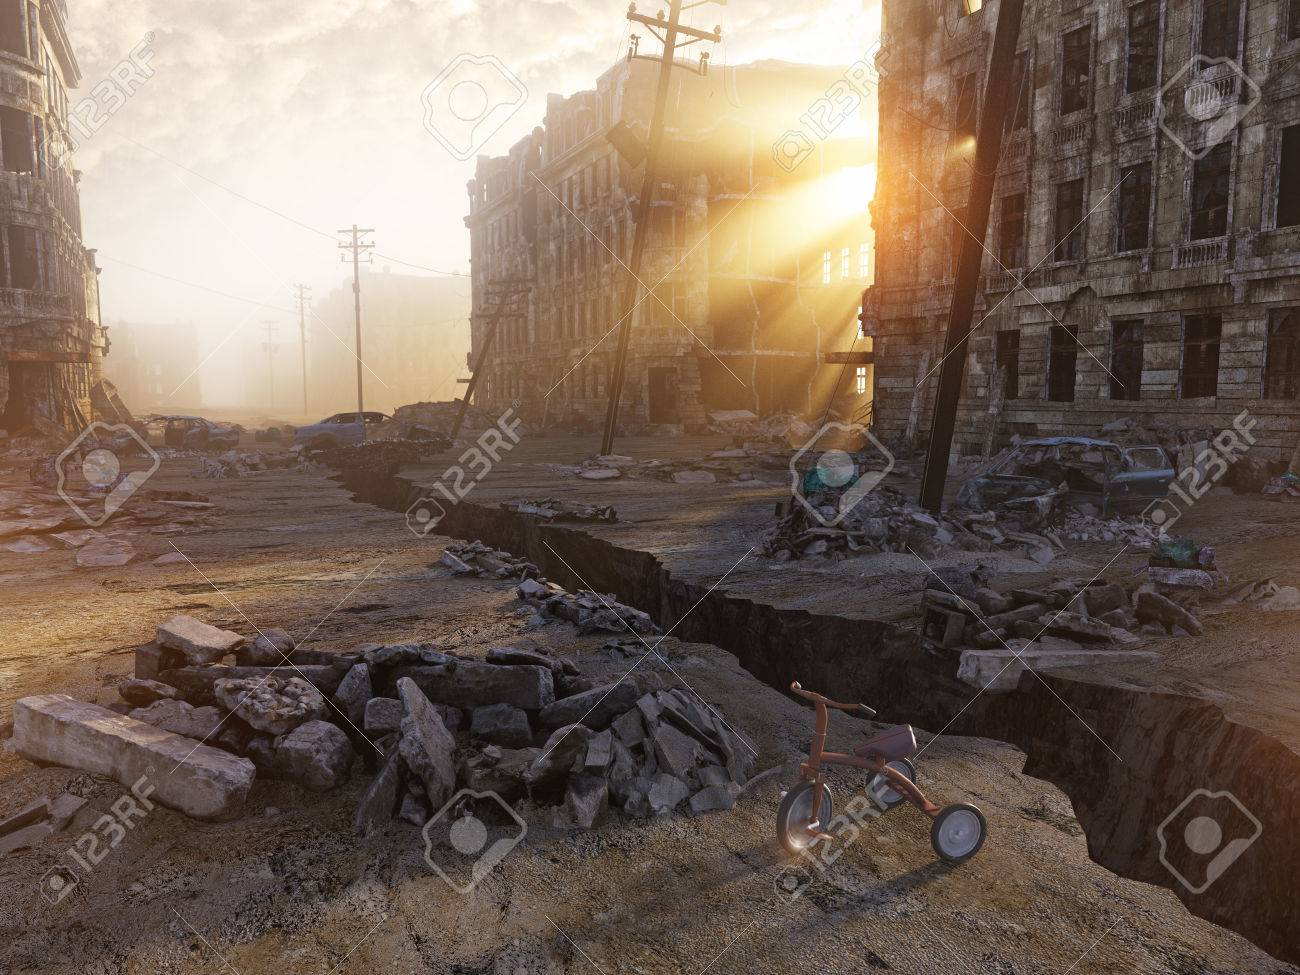 ruins of a city with a crack in the street. 3d illustration concept Standard-Bild - 64633950